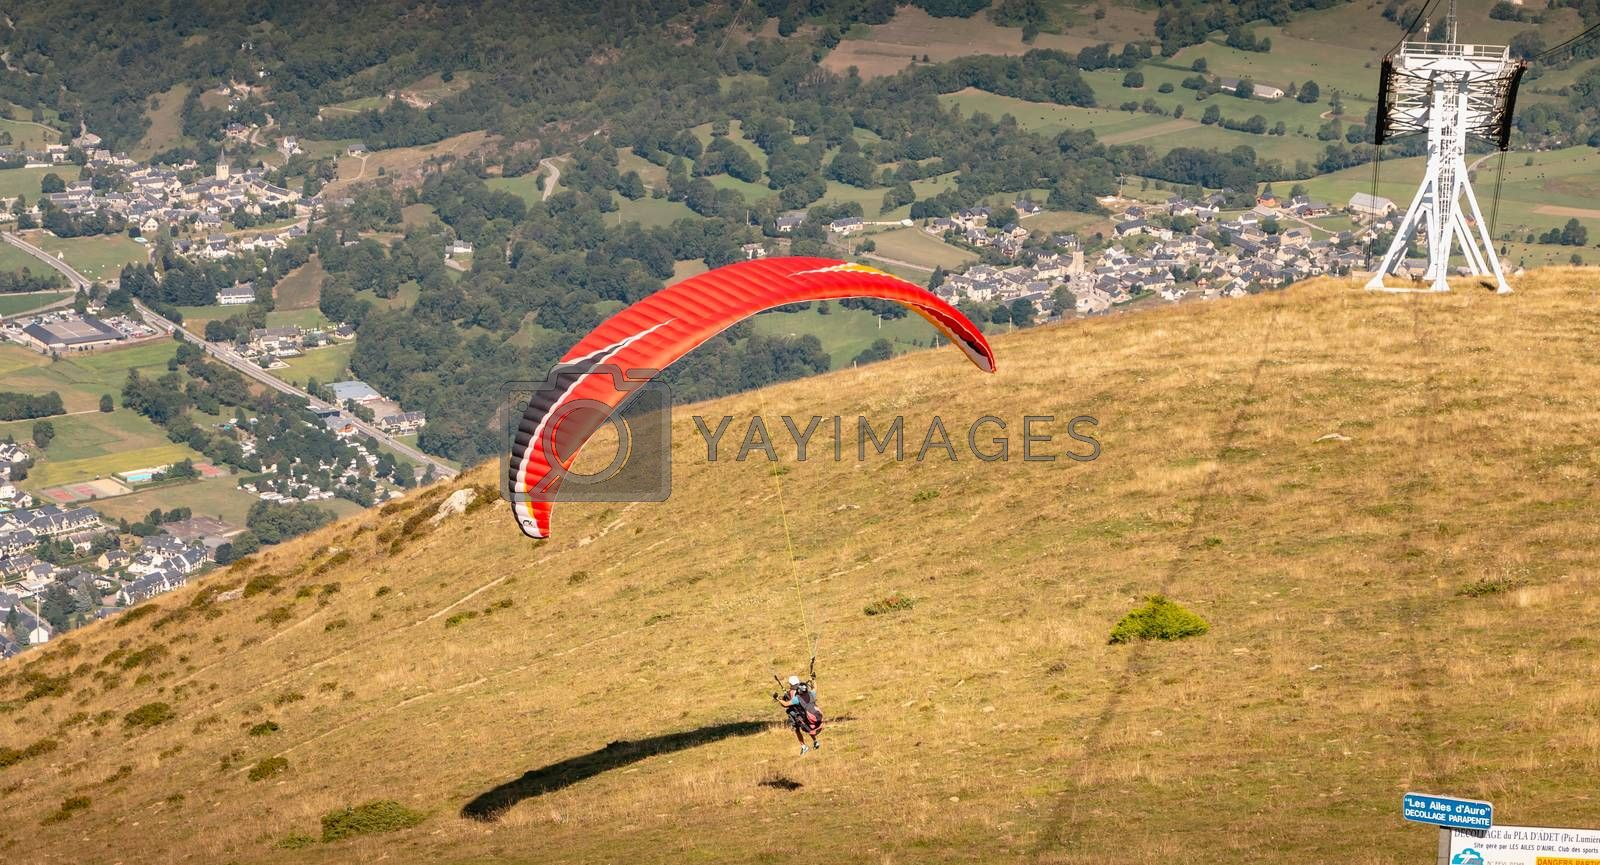 Saint Lary Soulan, France - August 20, 2018: takeoff of a paraglider from the top of the mountain, at 1700 meters altitude to fly over the valley on a summer day